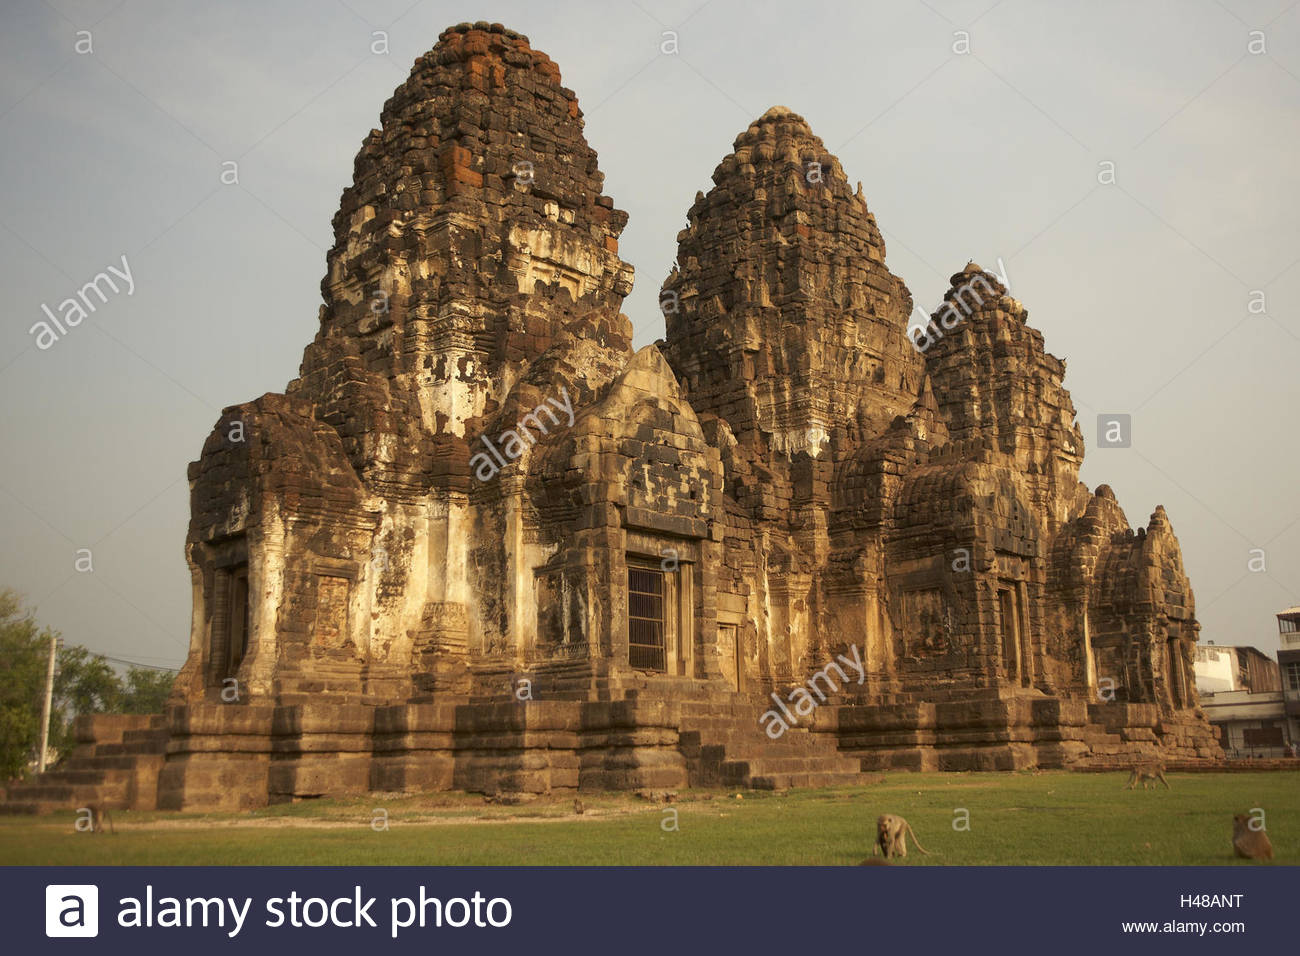 Asia, South-East Asia, Thailand, Zentralthailand, Lopburi, temple of the monkeys, Phra Being resplendent Sam Yod, - Stock Image